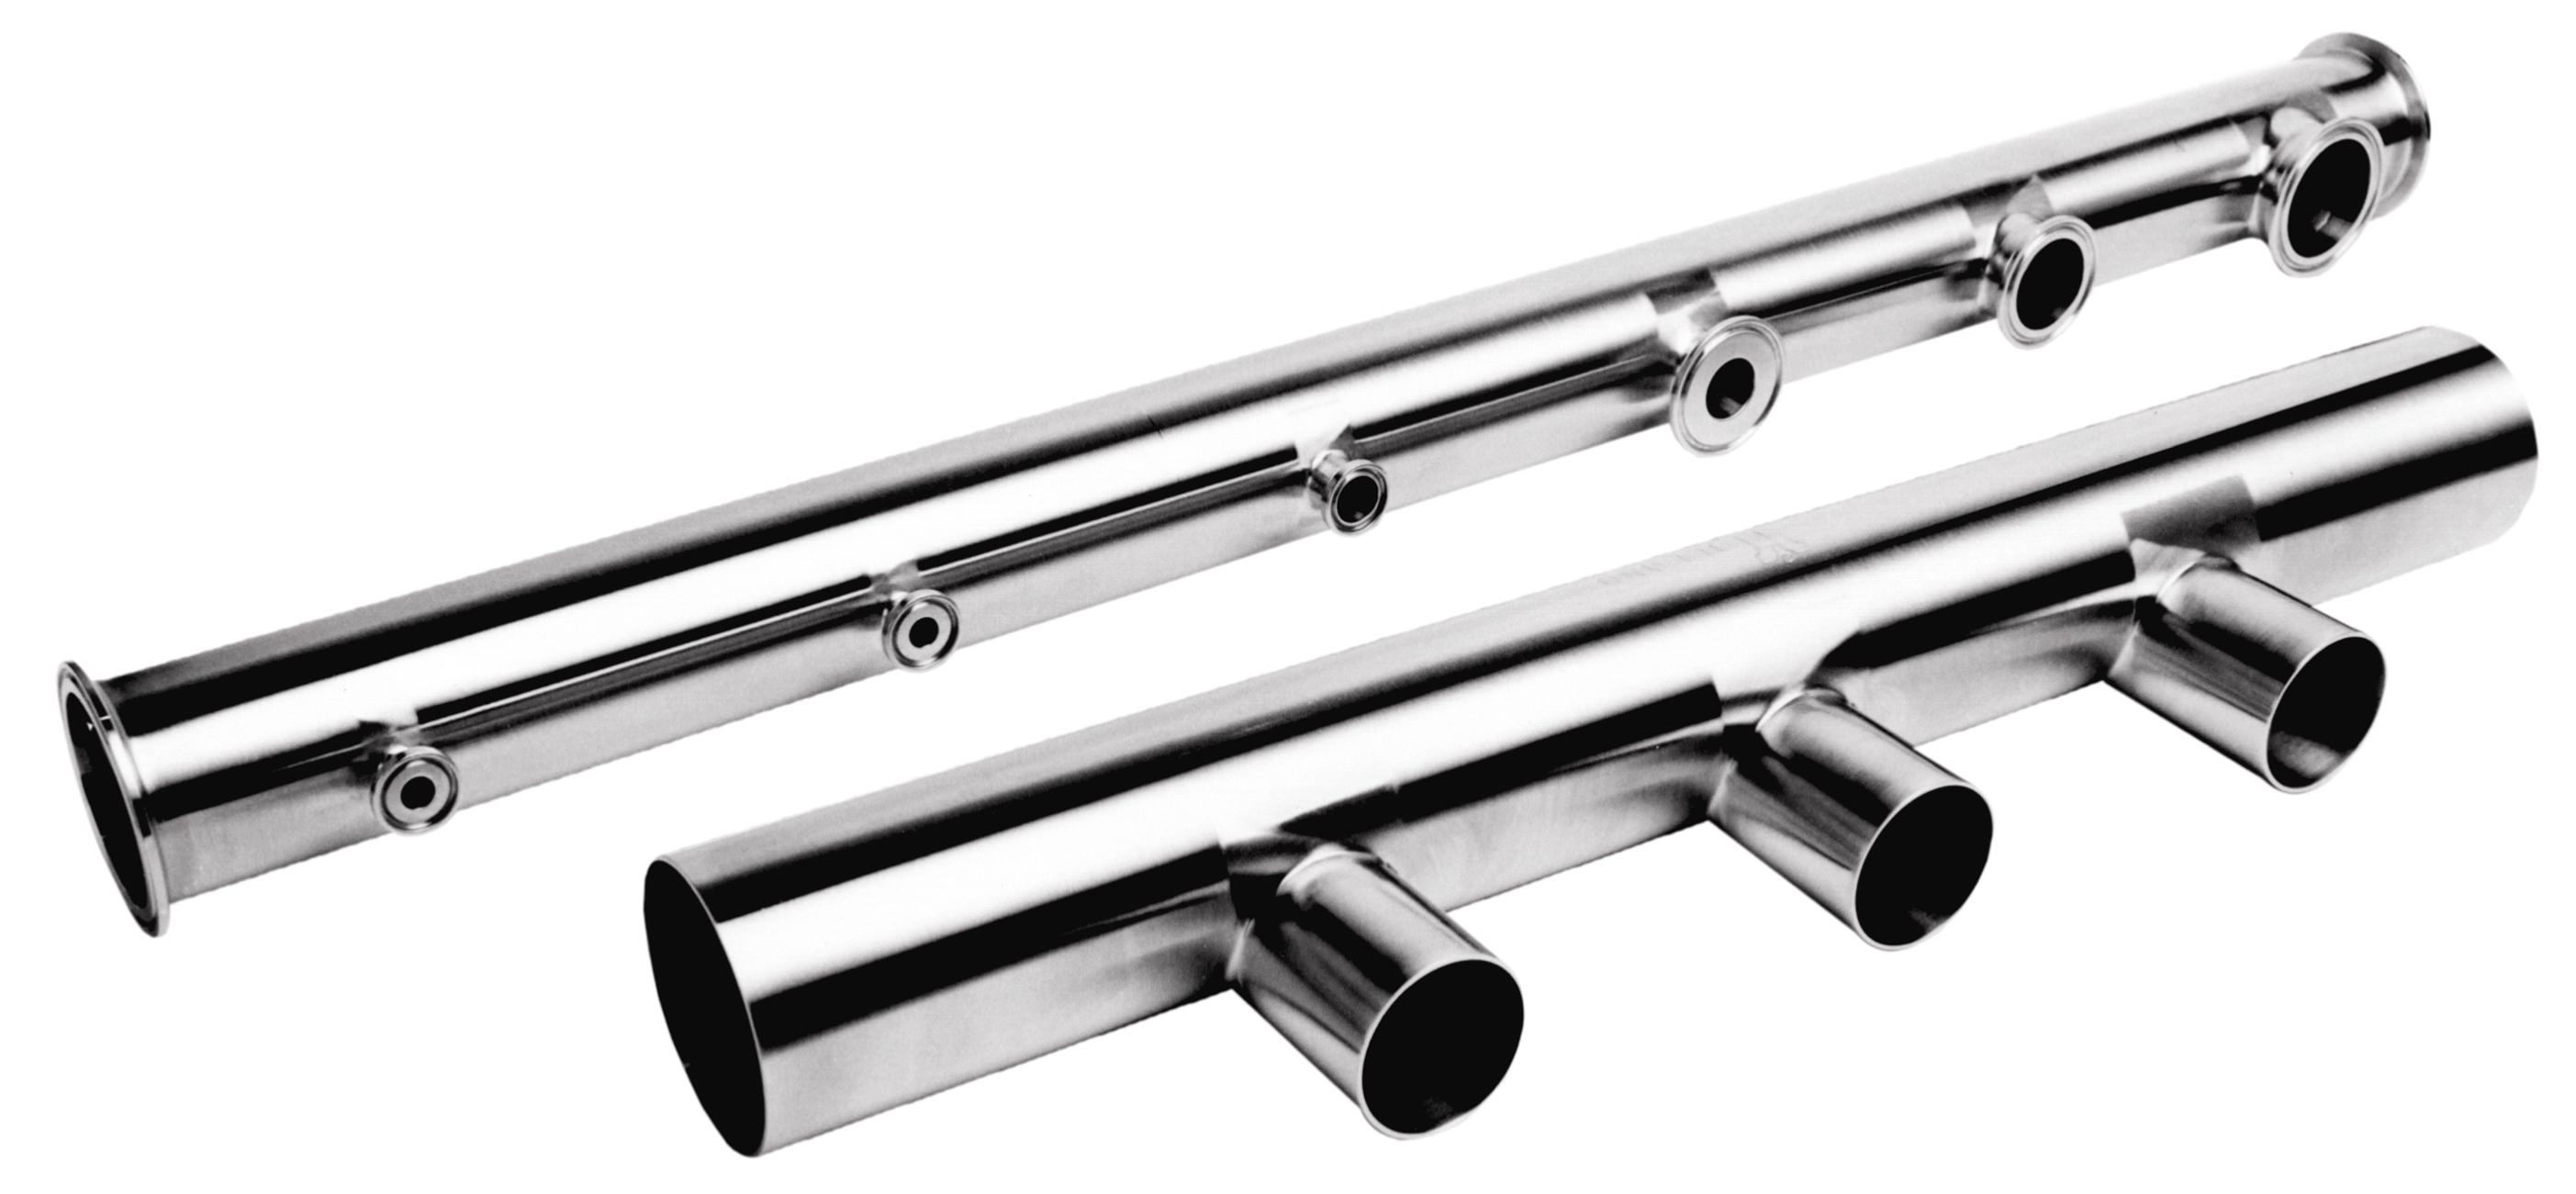 The best techniques to build sanitary stainless steel